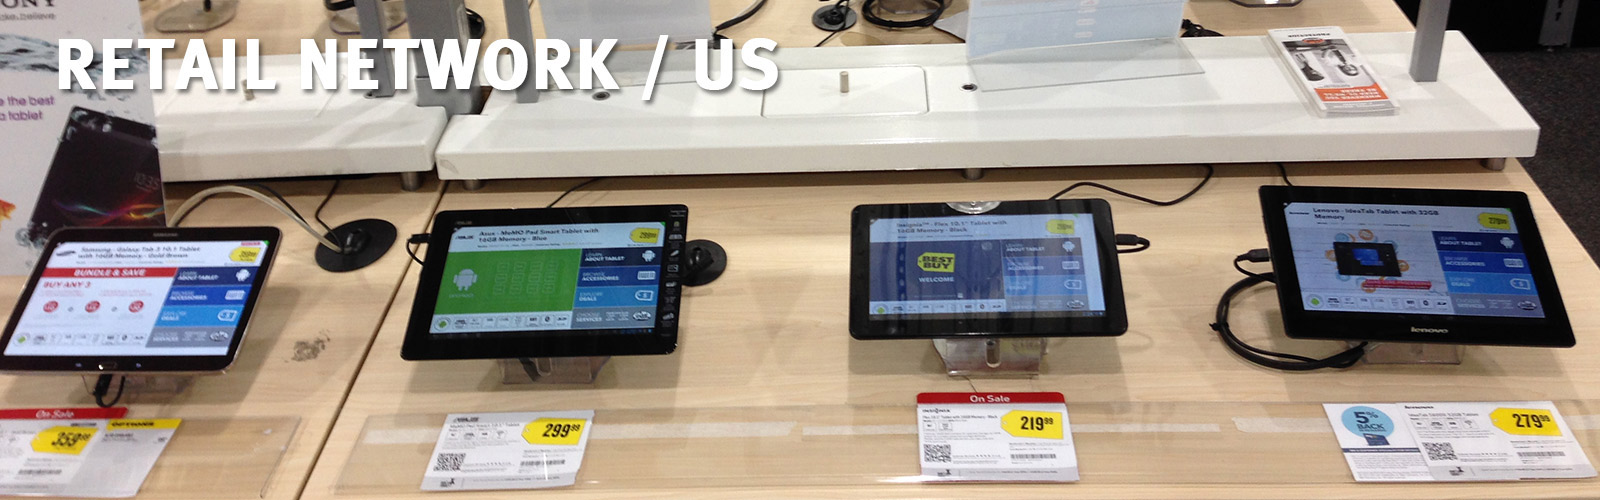 STORS-Web-Billboards-BestBuy-Tablets-wide